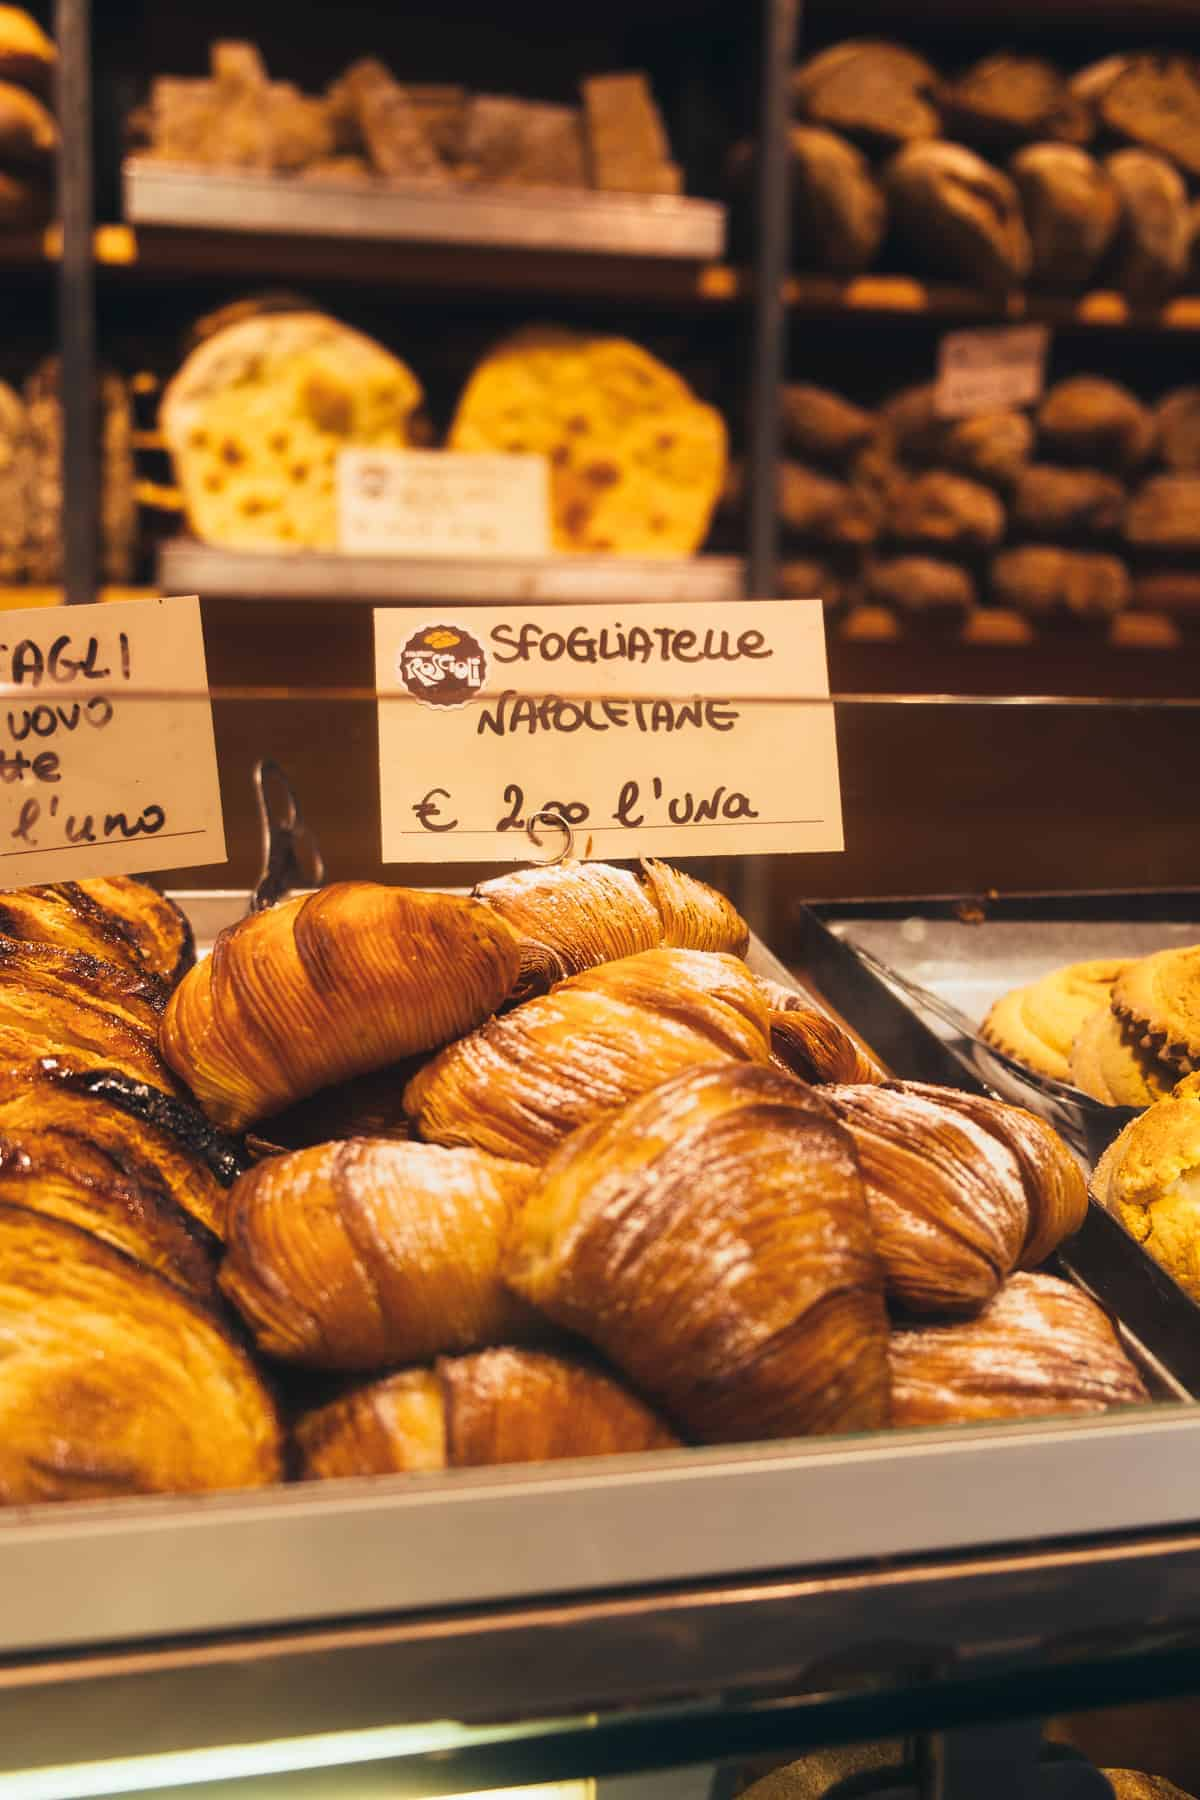 selection of sfogliatelle (shell-shaped flaky pastry dessert) sold in a shop